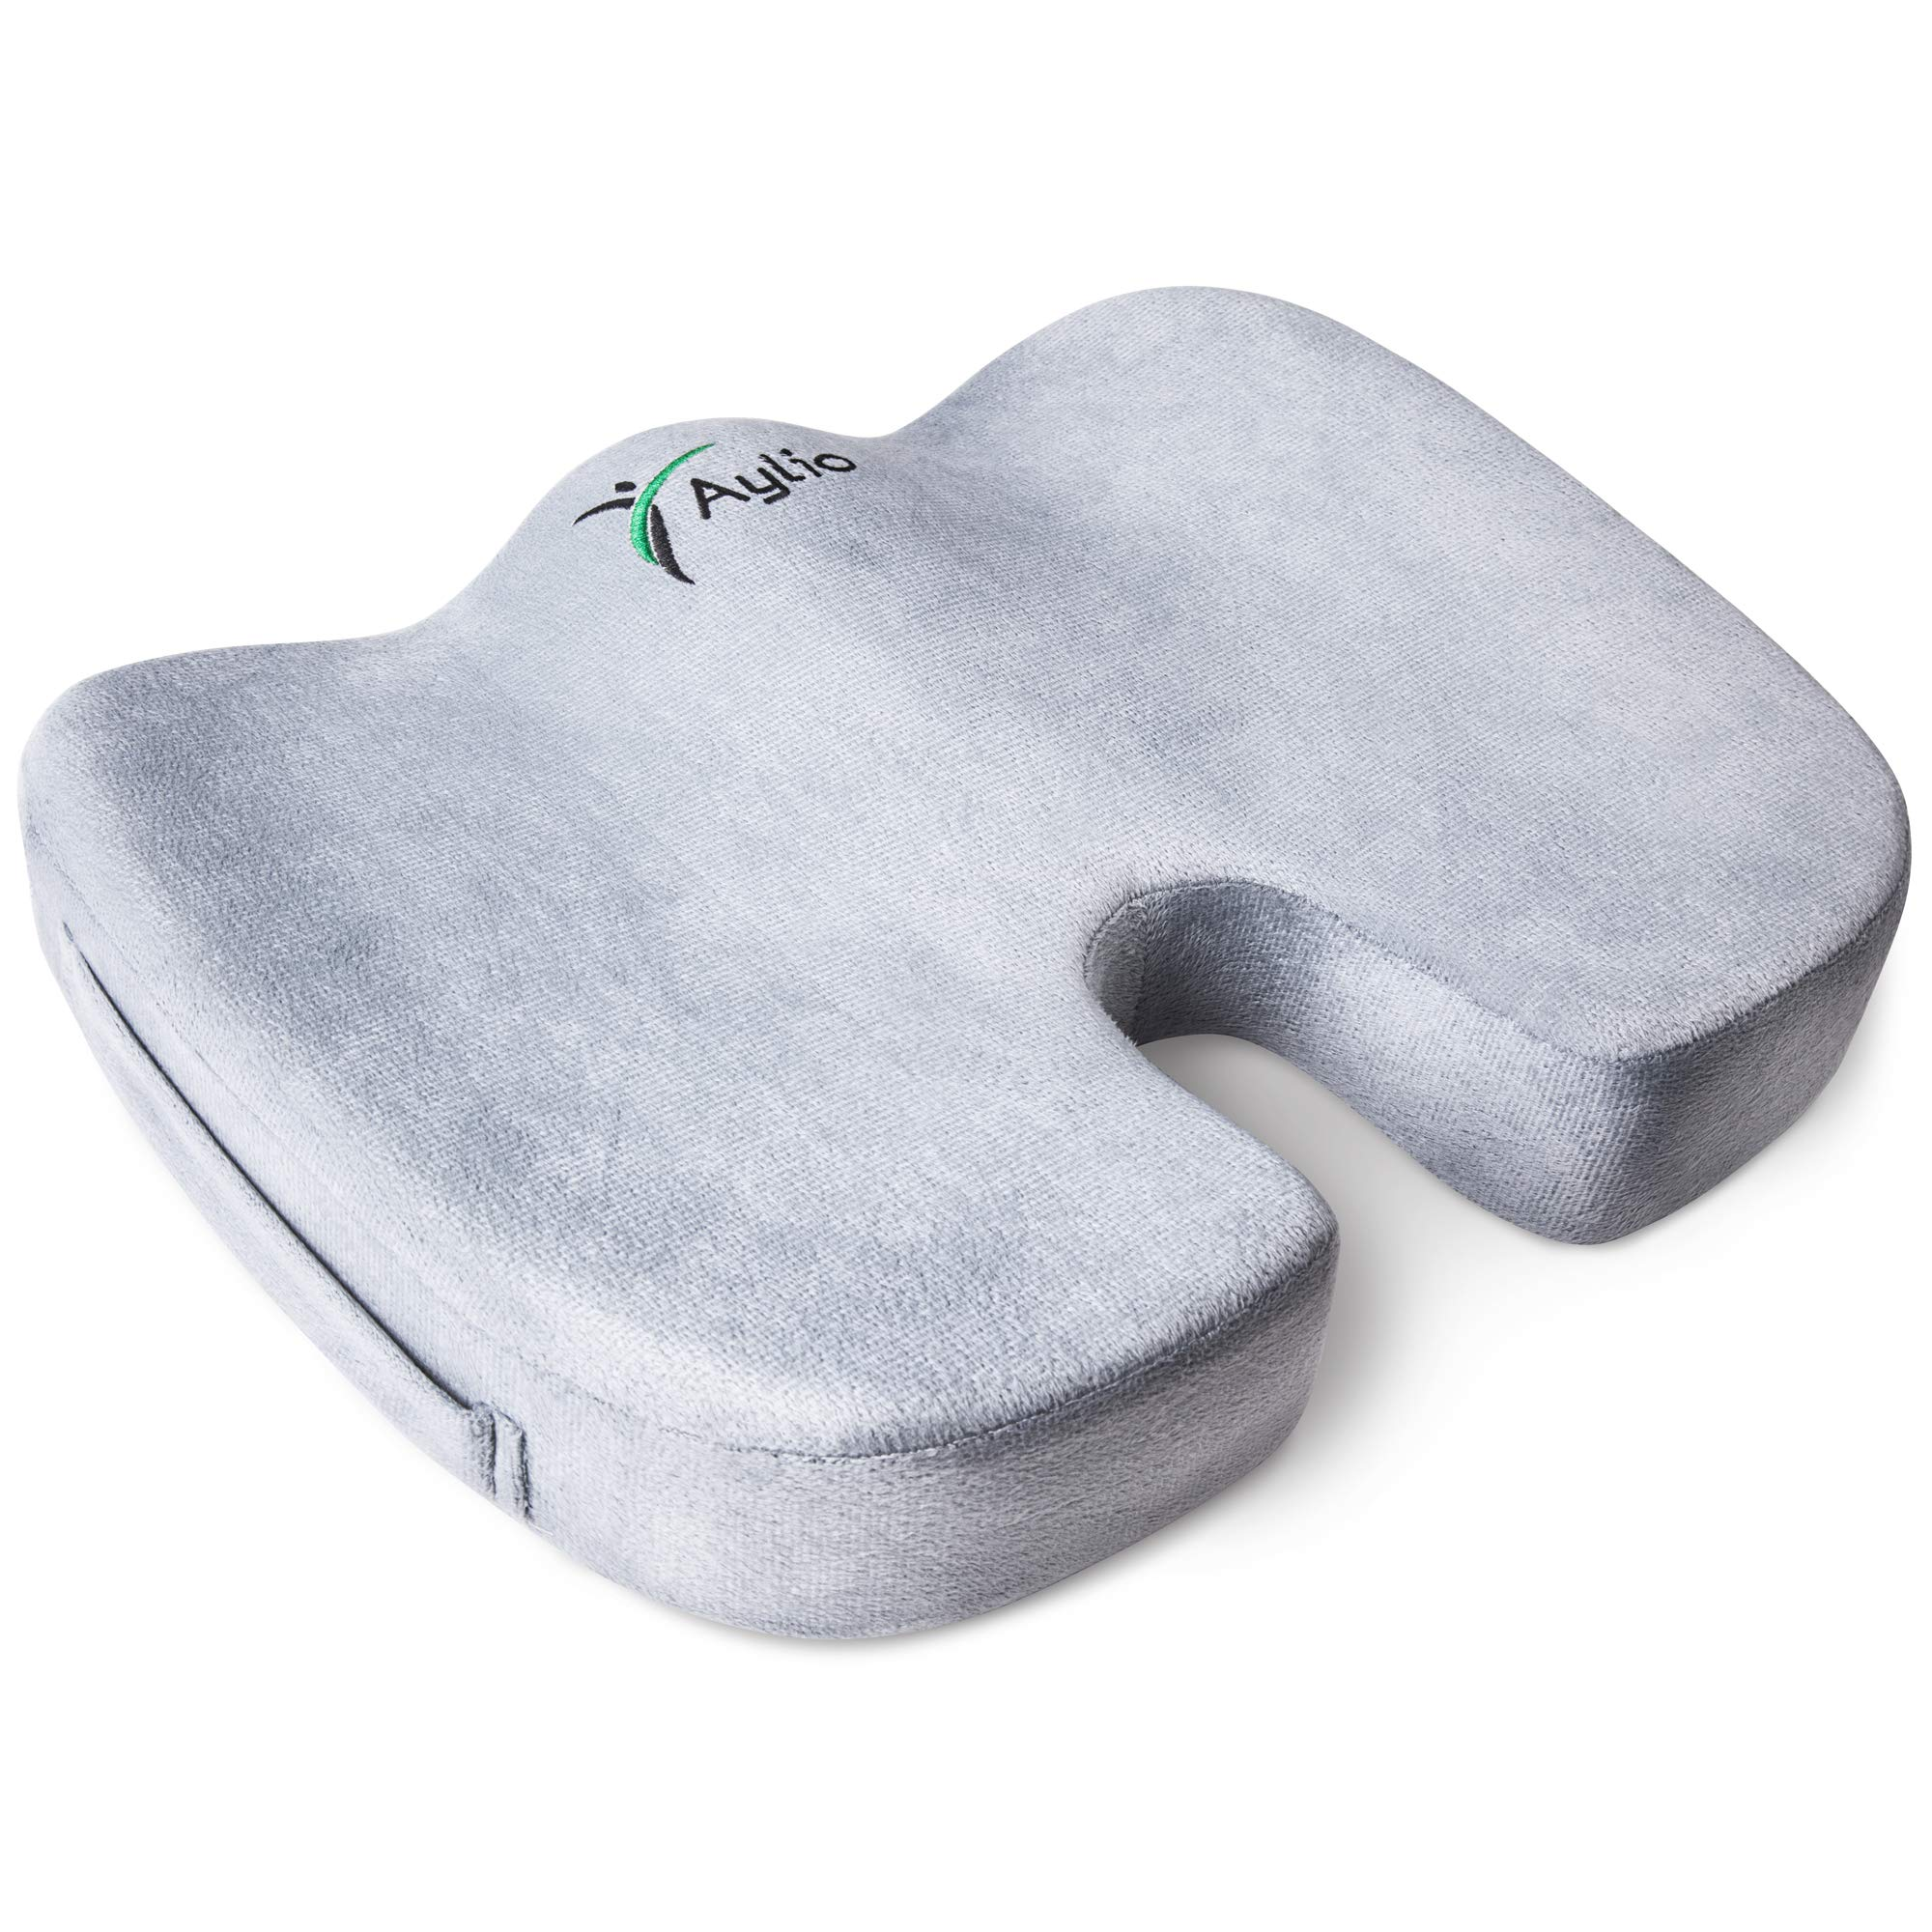 Aylio Coccyx Orthopedic Comfort Foam Seat Cushion for Lower Back, Tailbone and Sciatica Pain Relief (Gray) by Aylio